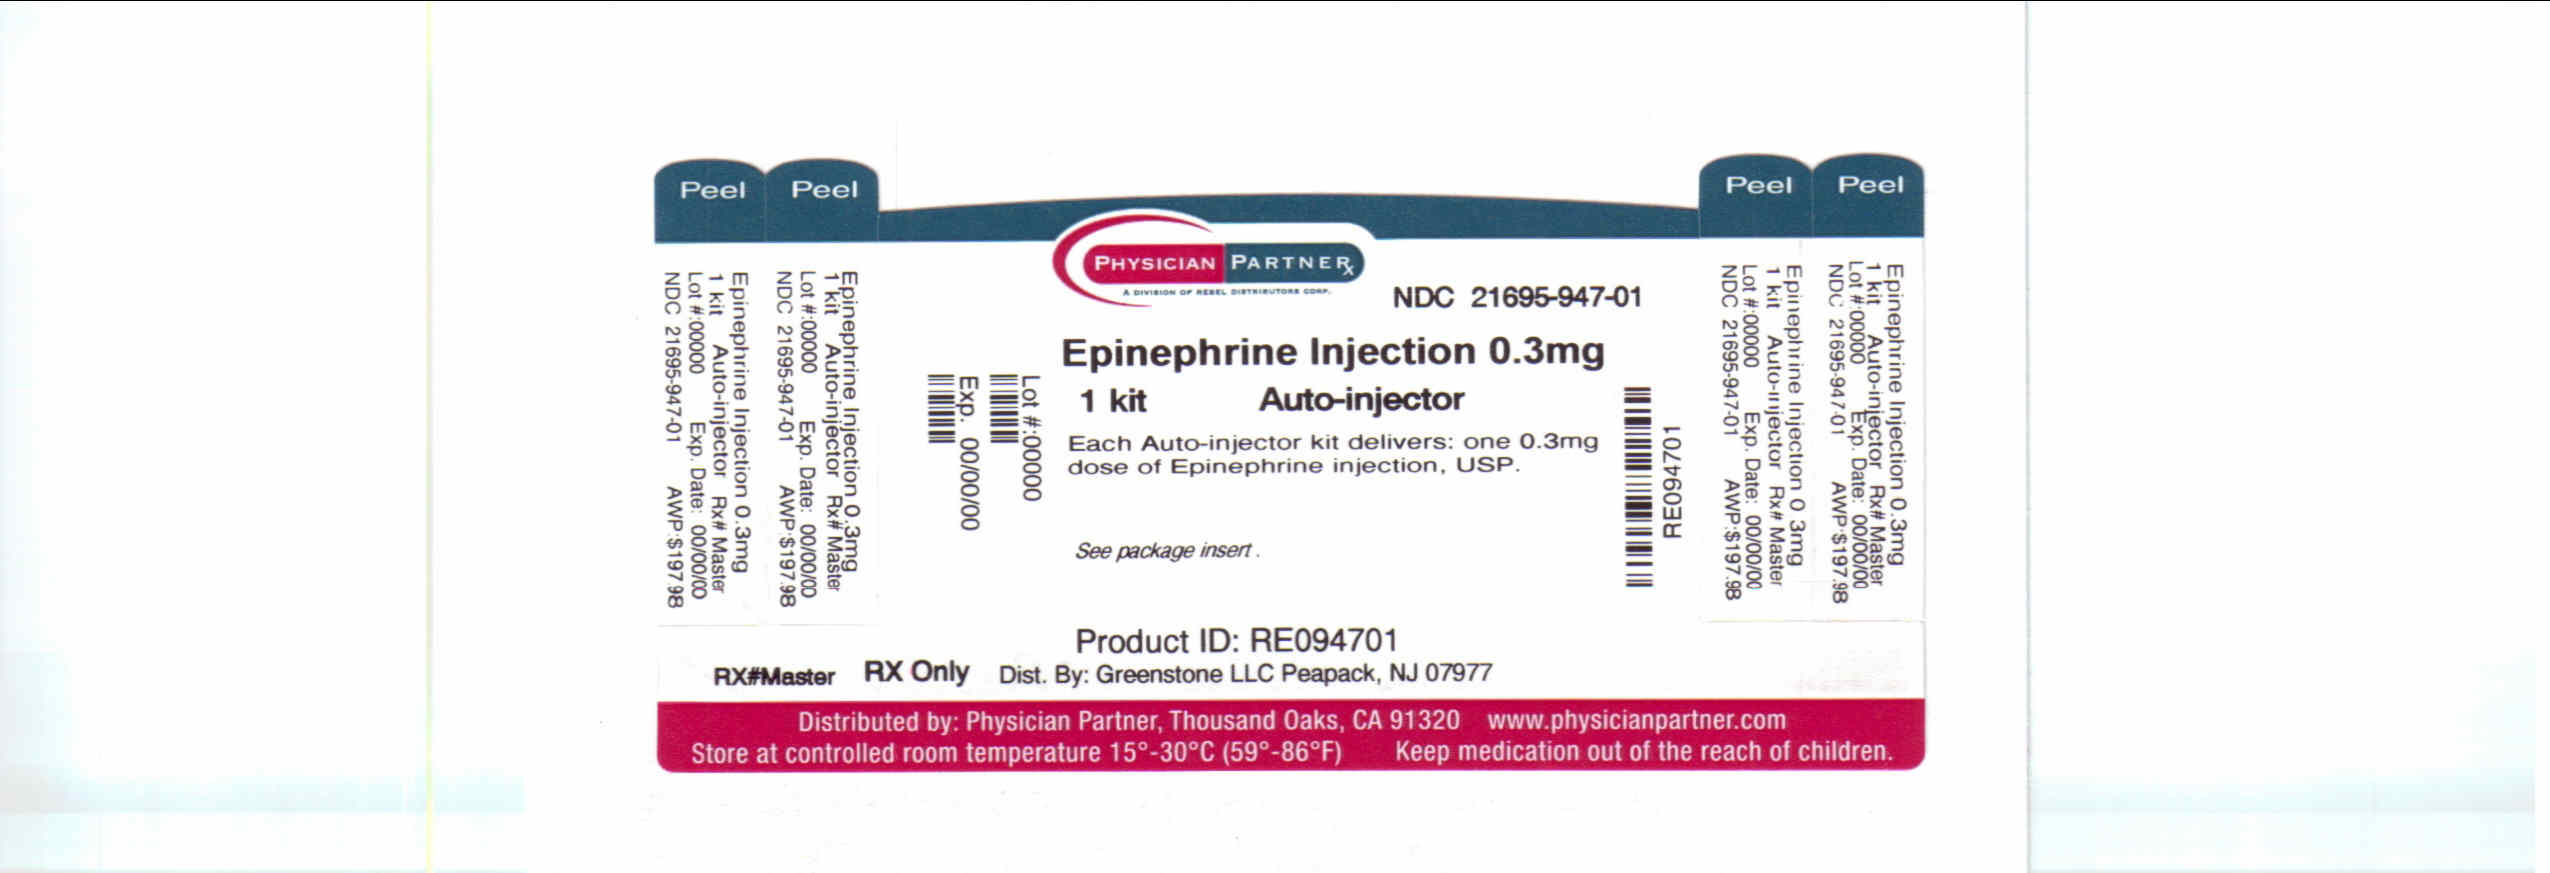 Epinephrine Injection 0.3mg